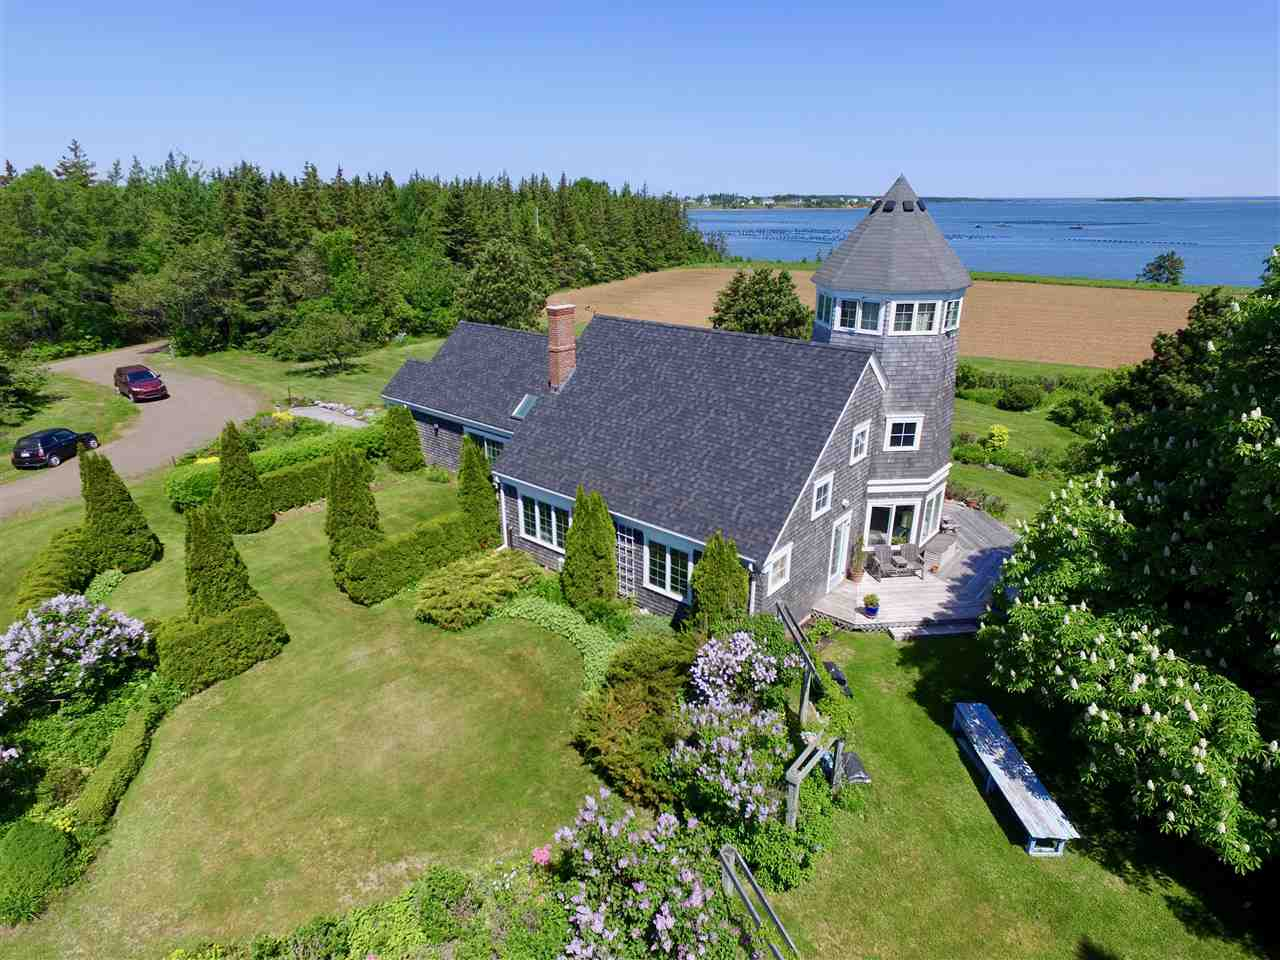 145 Salt Meadows Gate, Oyster Bed Bridge, Prince Edward Island, Canada